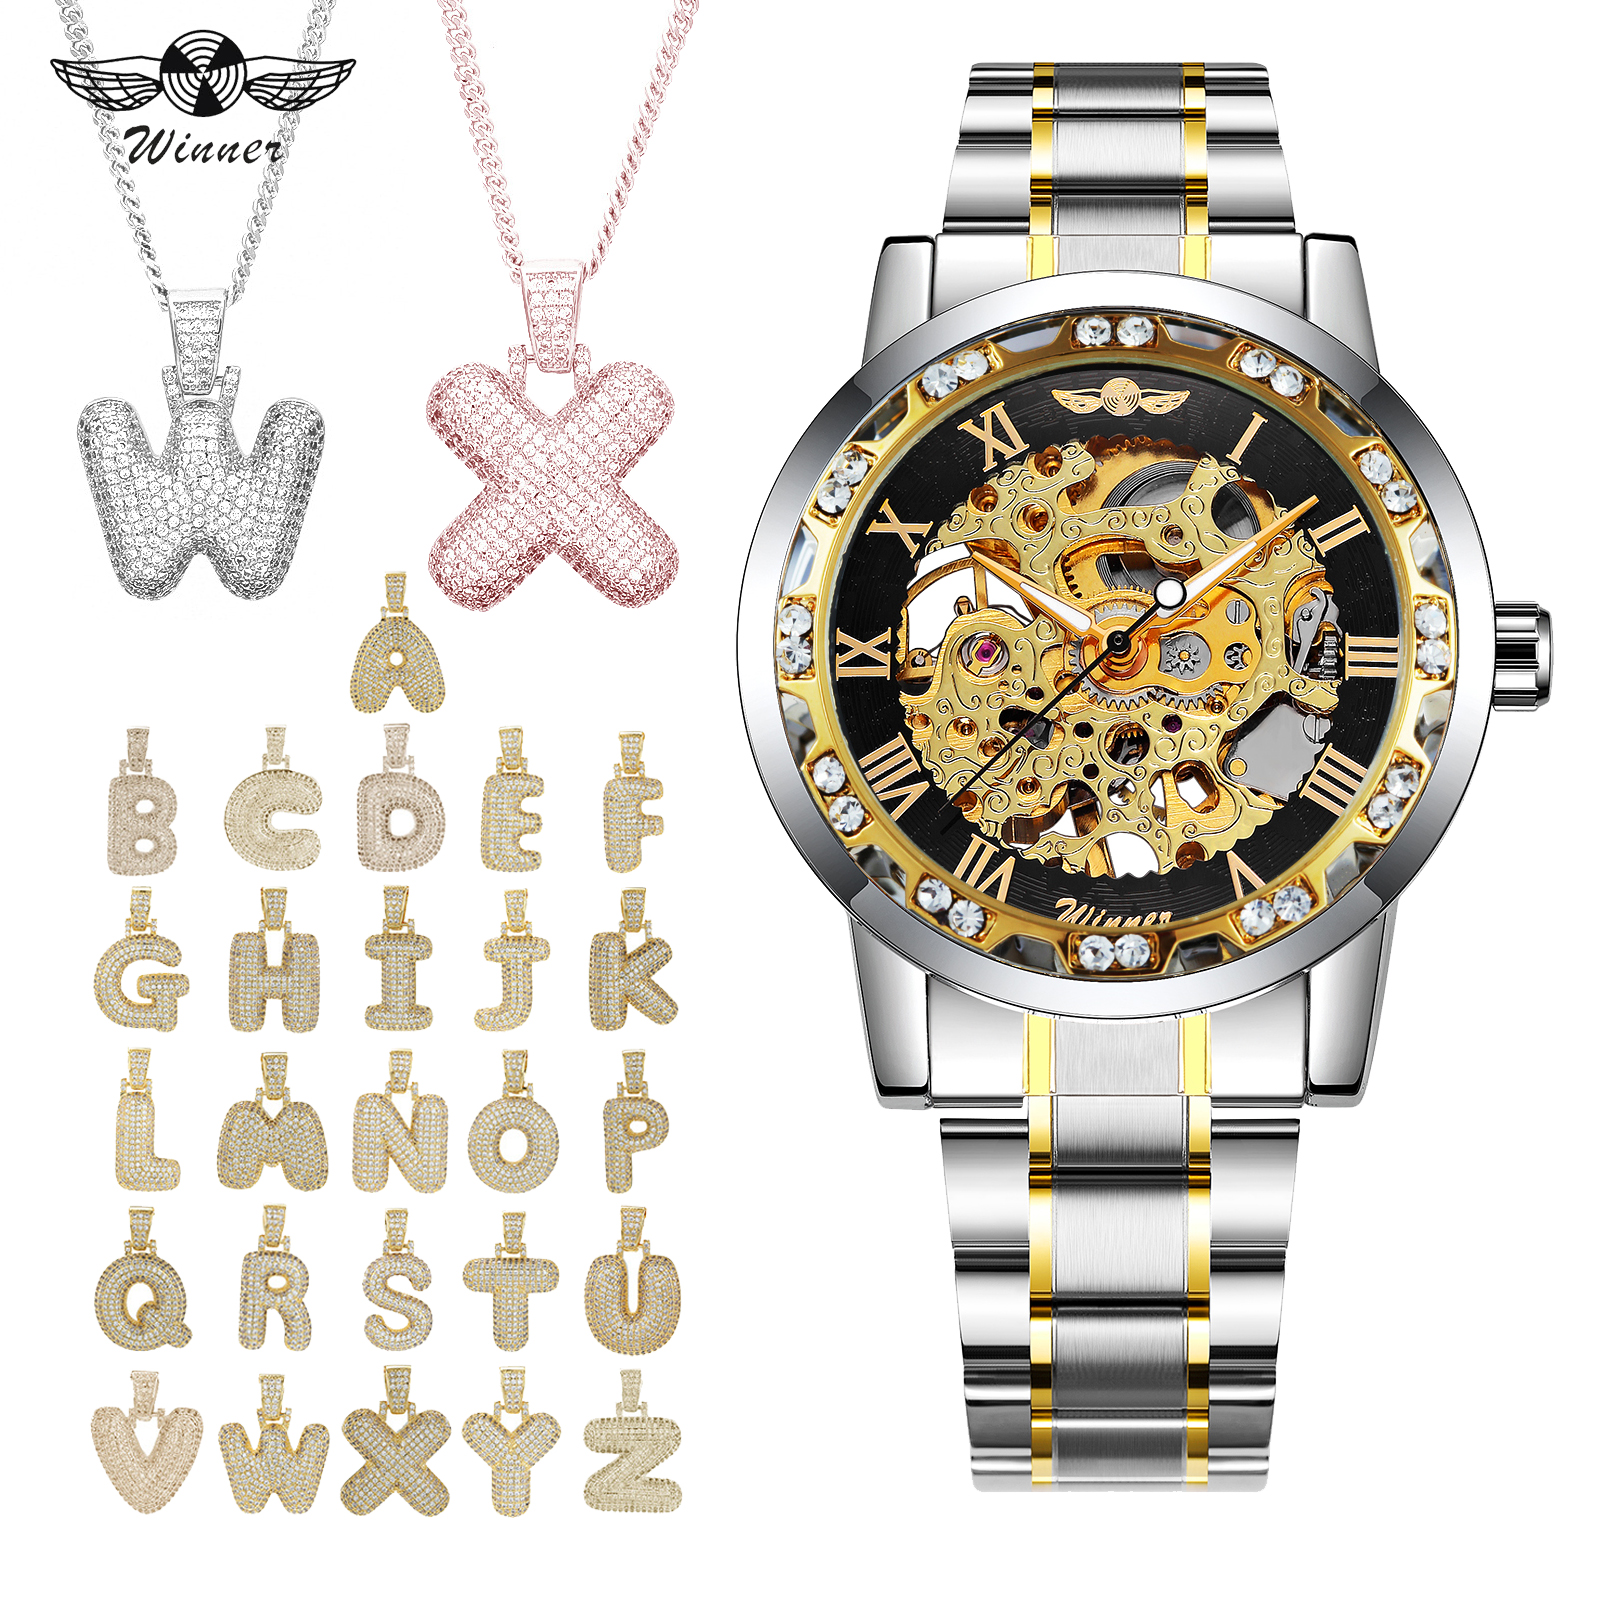 WINNER Mechanical Mens Watches Men Top Brand Luxury Steel Strap Hip Hop Punk Jewelry Set + 26 Alphabet Golden NecklaceWINNER Mechanical Mens Watches Men Top Brand Luxury Steel Strap Hip Hop Punk Jewelry Set + 26 Alphabet Golden Necklace